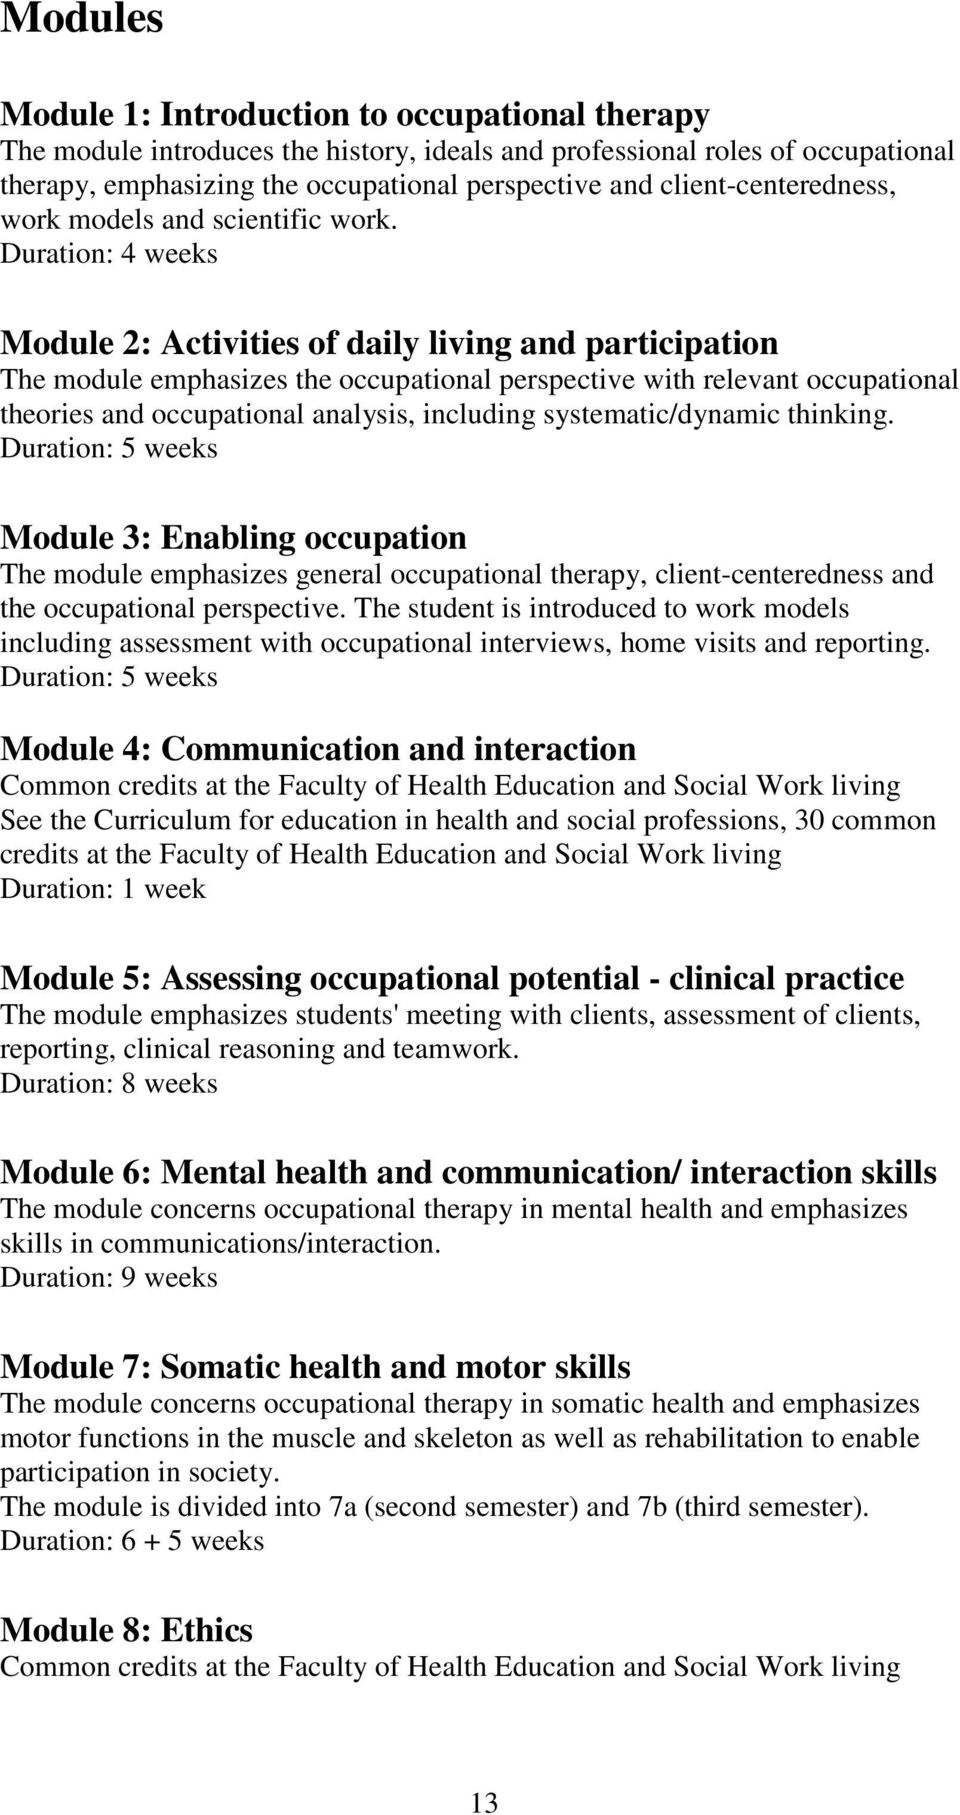 Duration: 4 weeks Module 2: Activities of daily living and participation The module emphasizes the occupational perspective with relevant occupational theories and occupational analysis, including